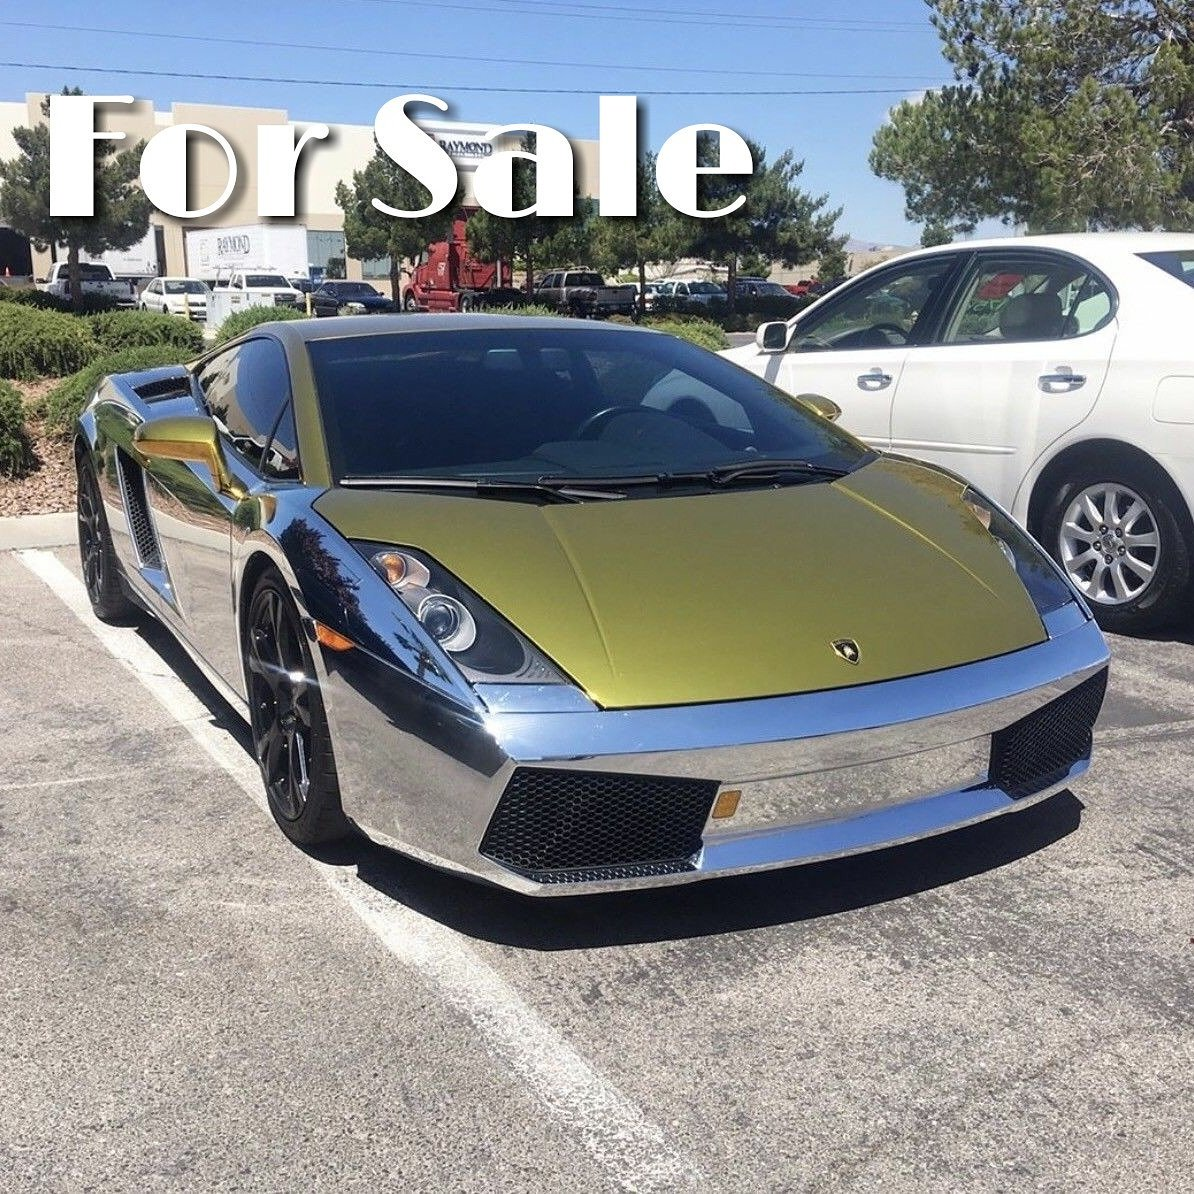 expensive sale probably golden is worlds million car this gold for most the lamborghini